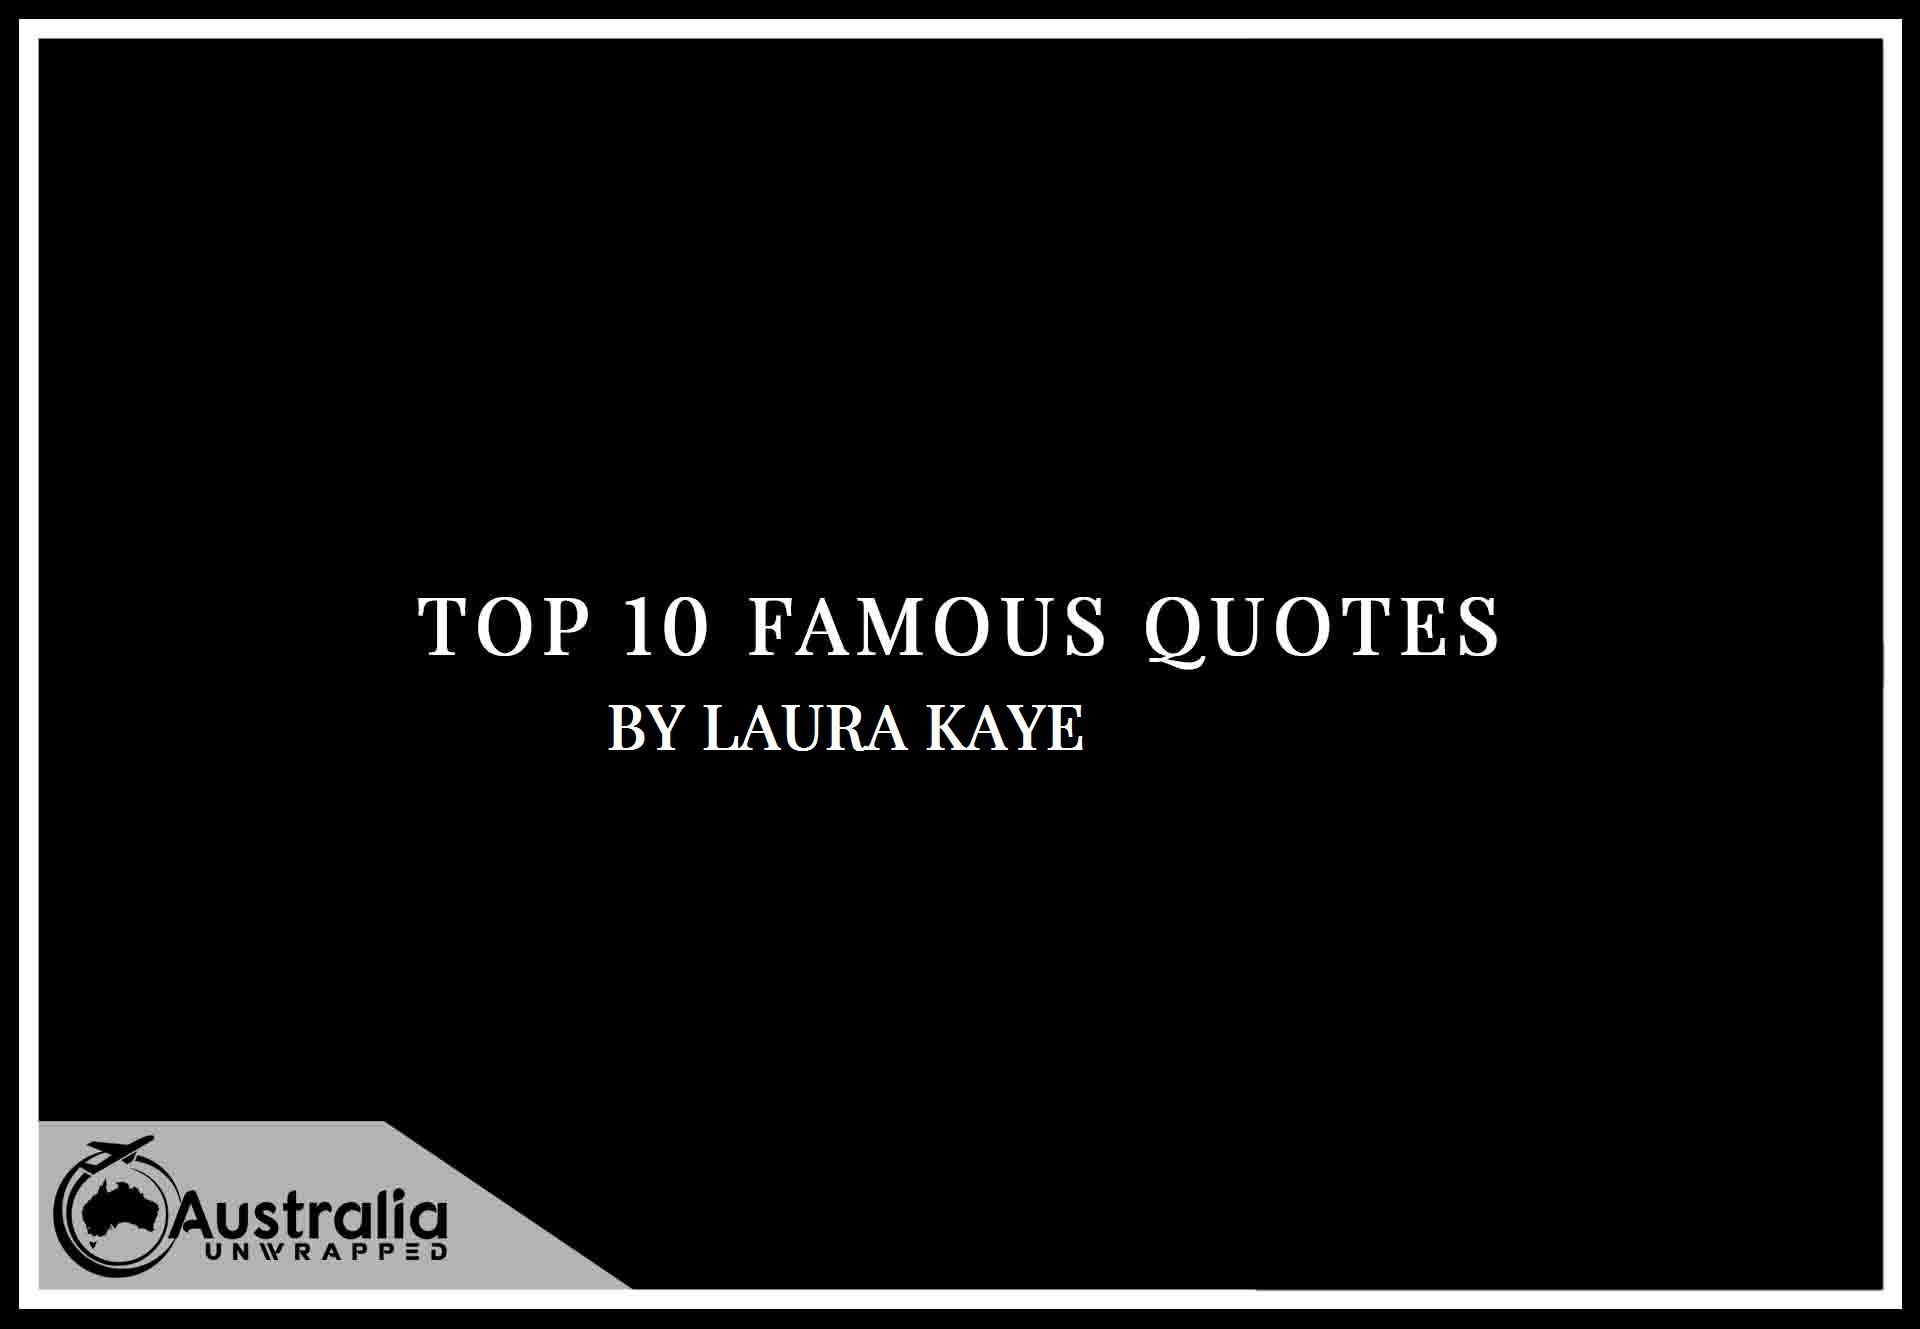 Laura Kaye's Top 10 Popular and Famous Quotes